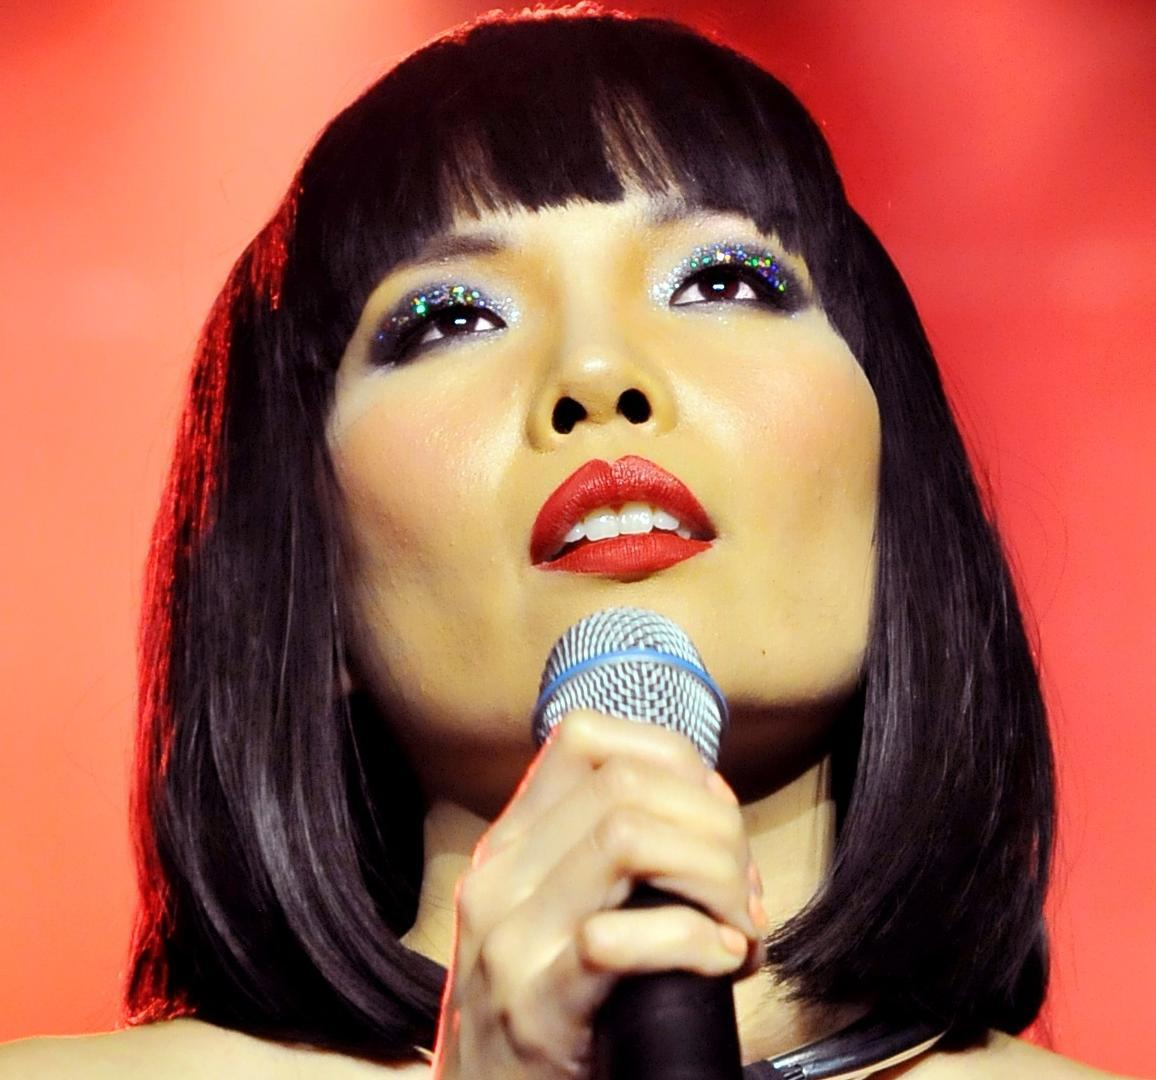 Dami Im Bio, Net Worth, Facts